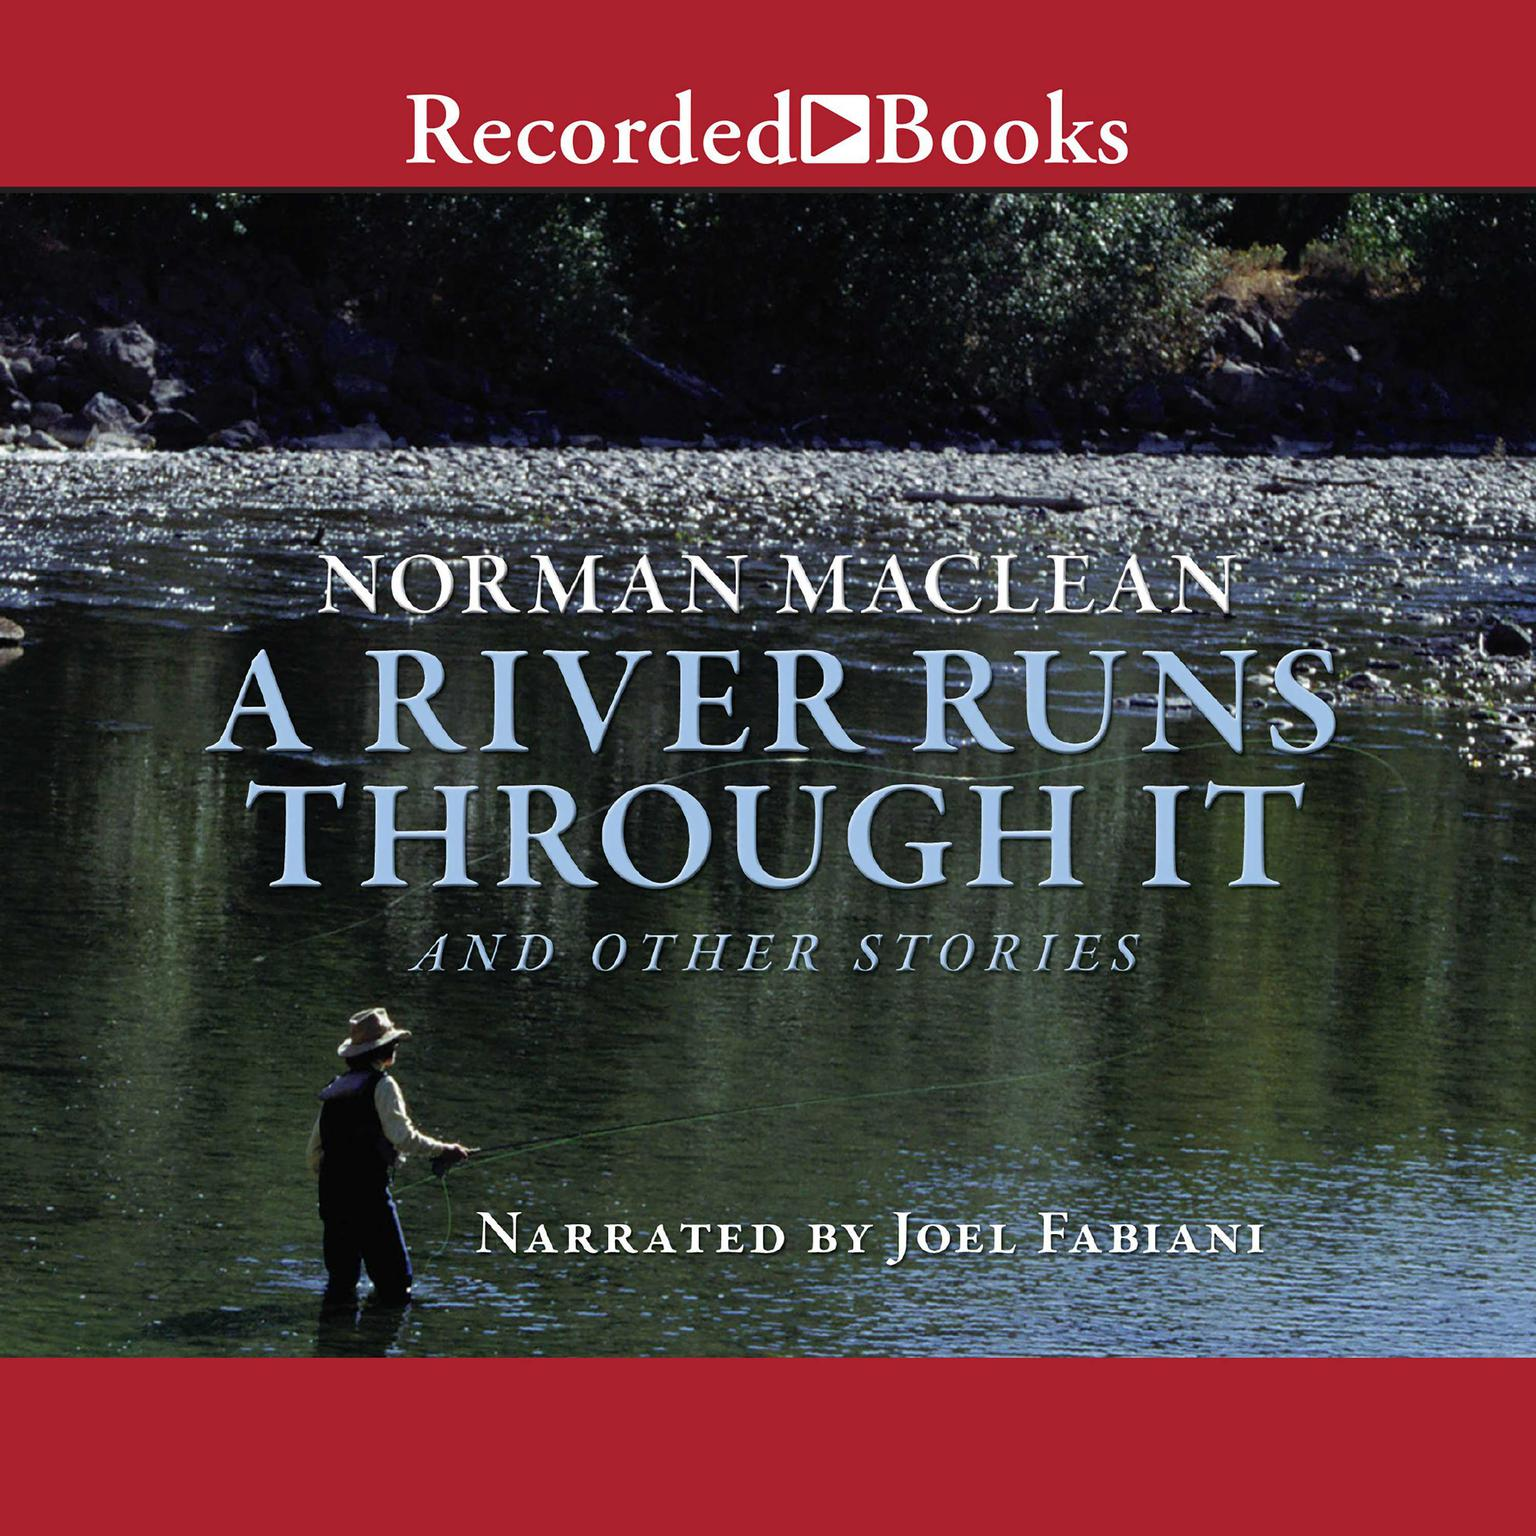 comprehensive analysis of the book and movie versions of a river runs through it Essays and criticism on norman maclean's a river runs through it direct the film version between the book and the movie portrayal of a river.